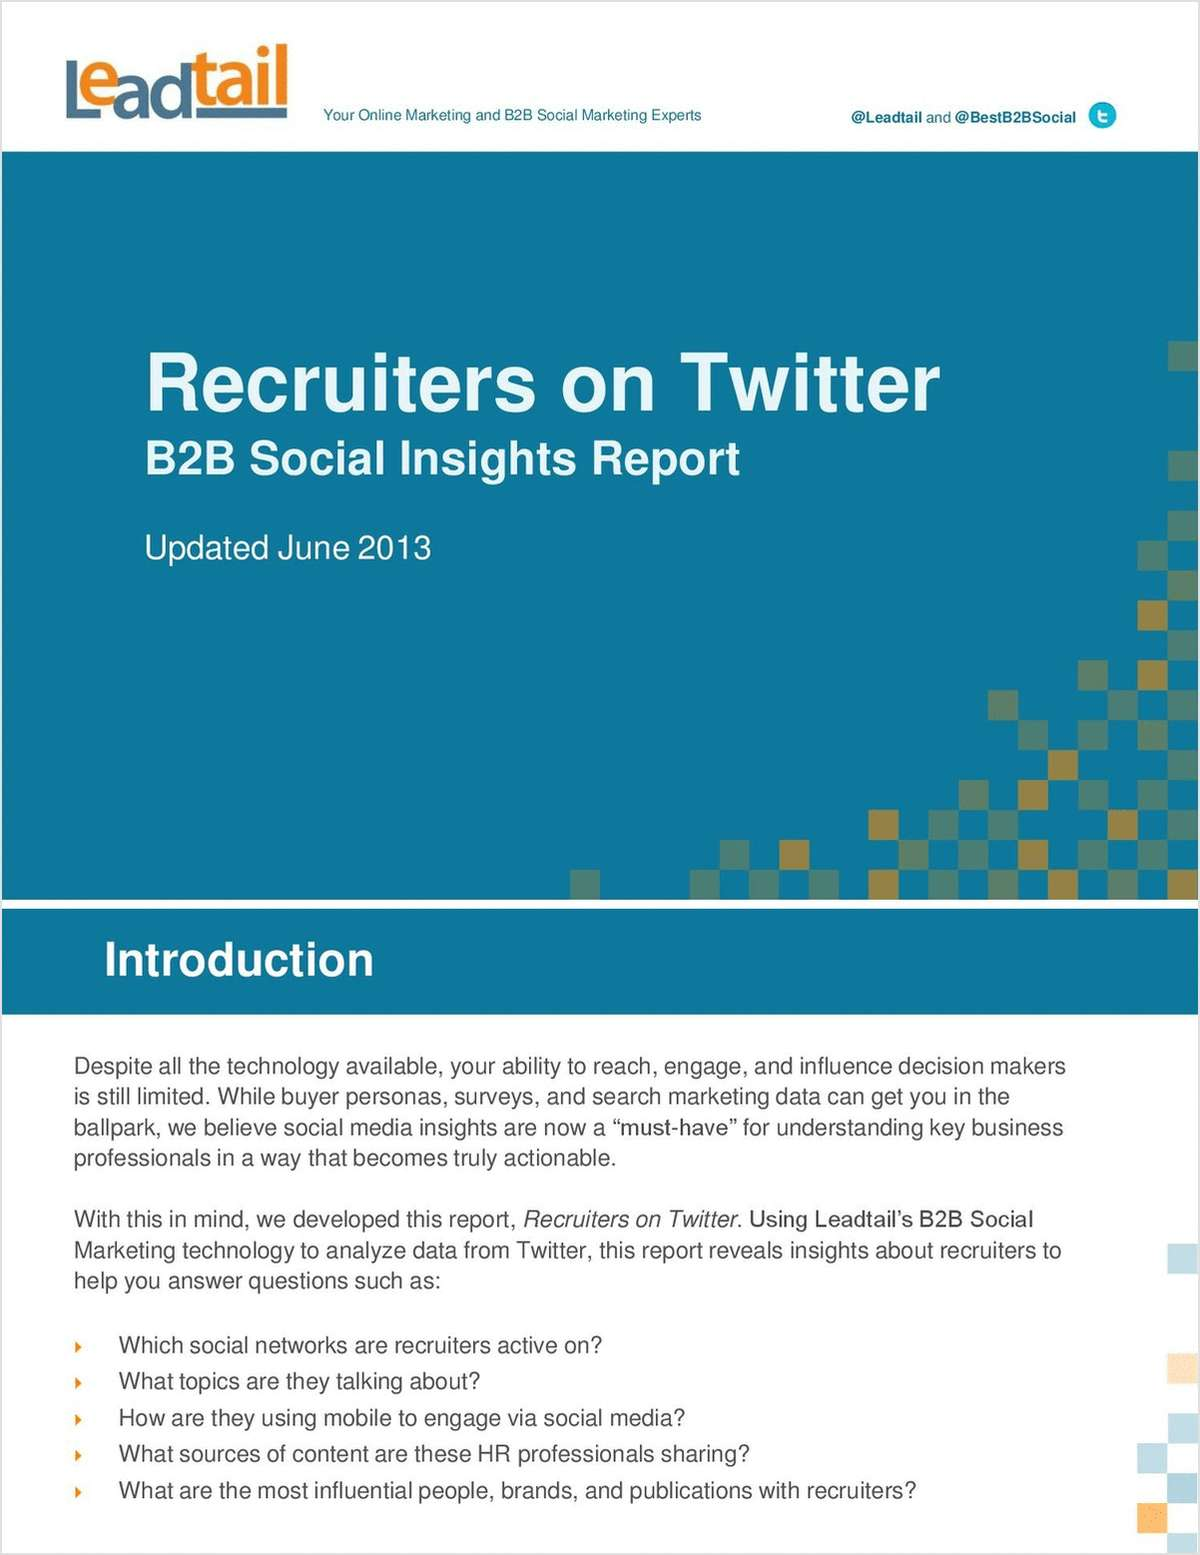 Recruiters on Twitter: B2B Social Insights Report